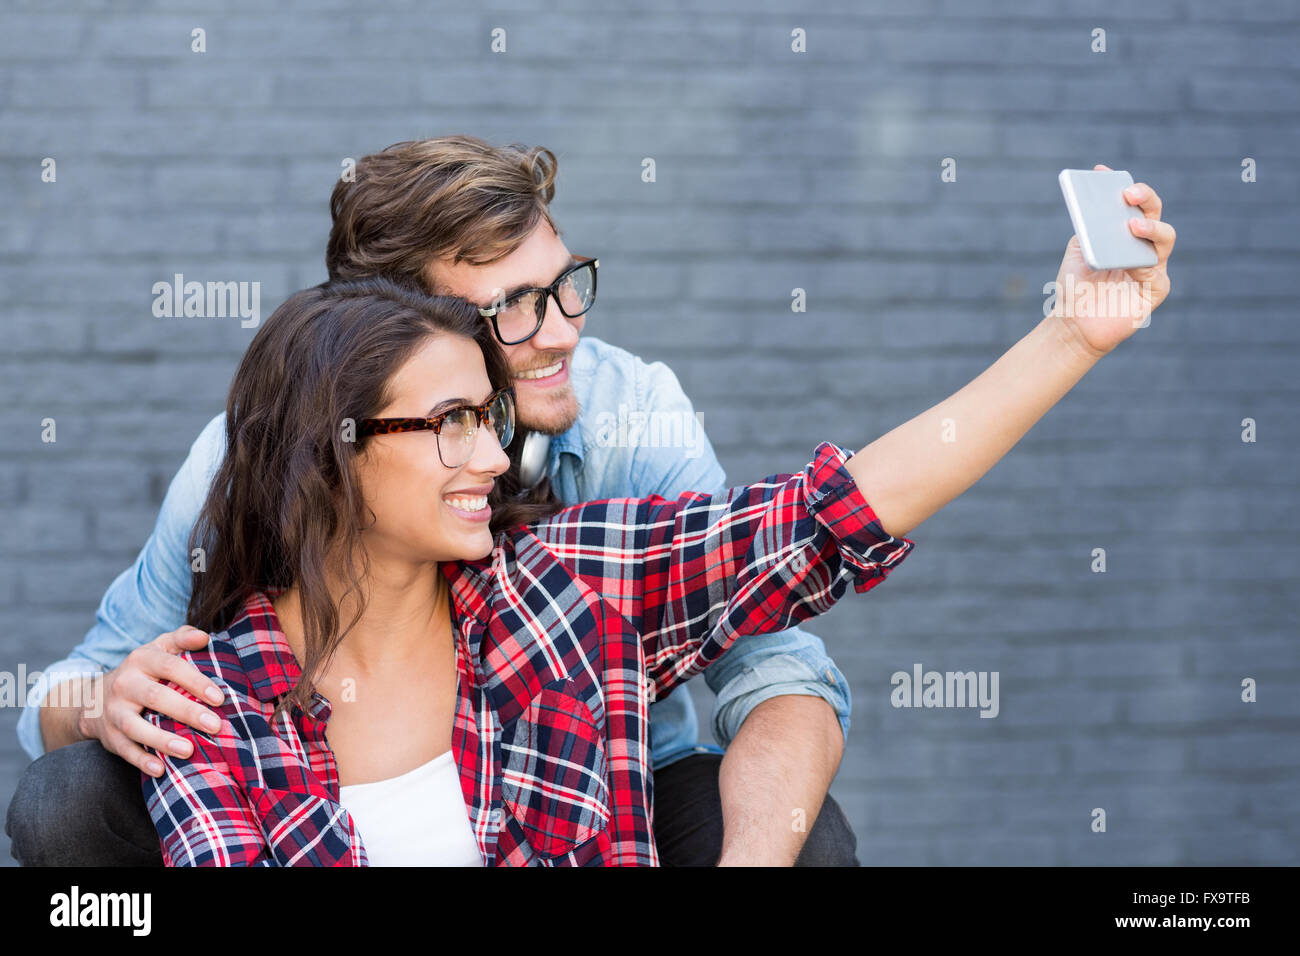 Young couple in spectacles taking a selfie - Stock Image